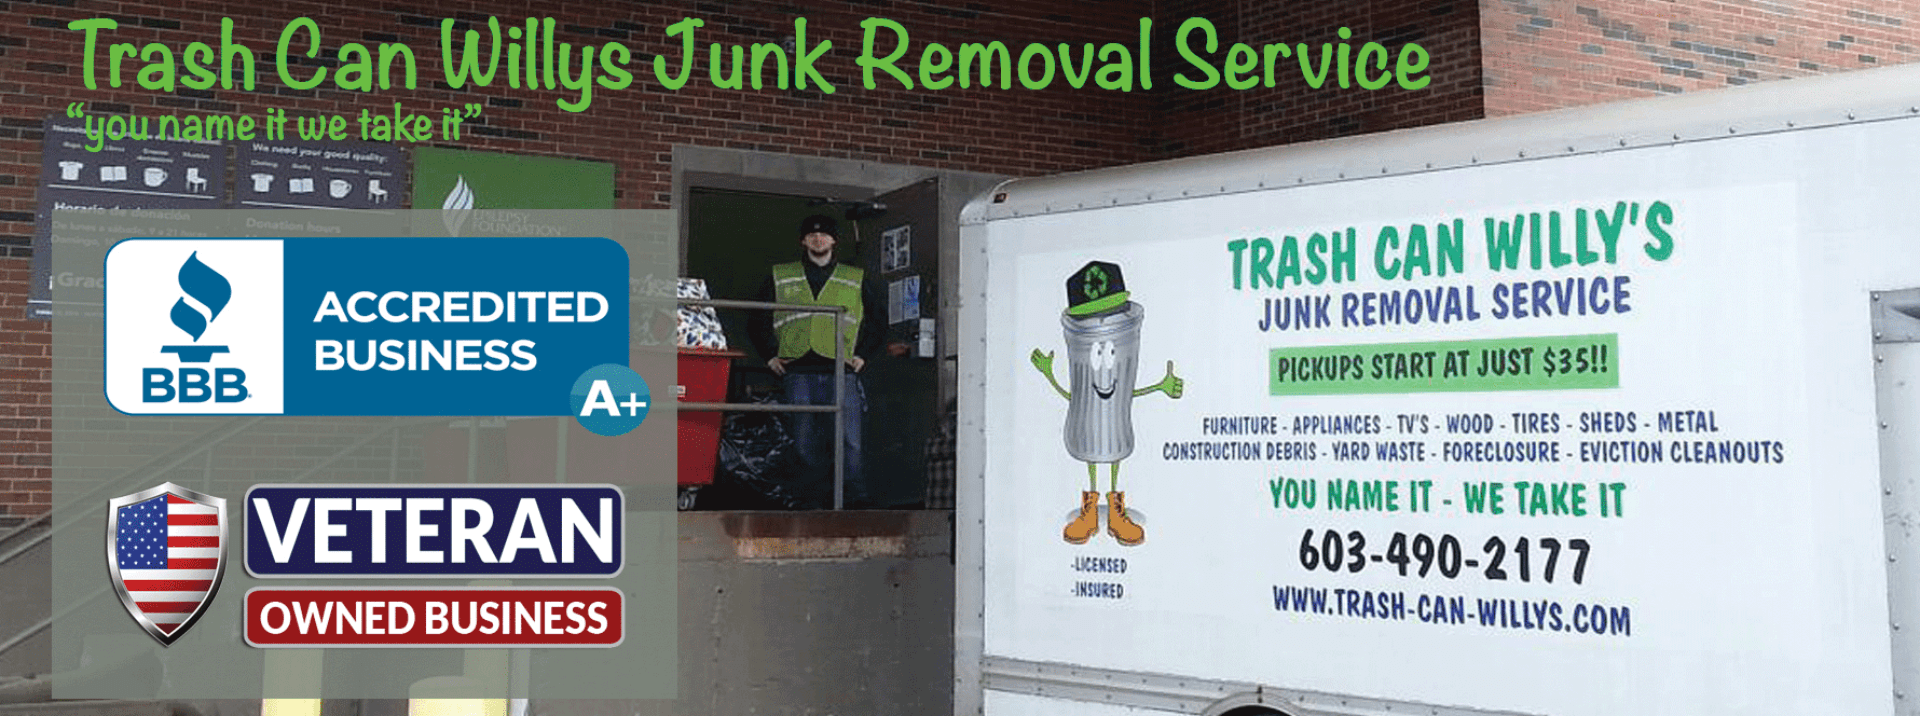 debris hauling junk removal whole house cleanout services ma nh